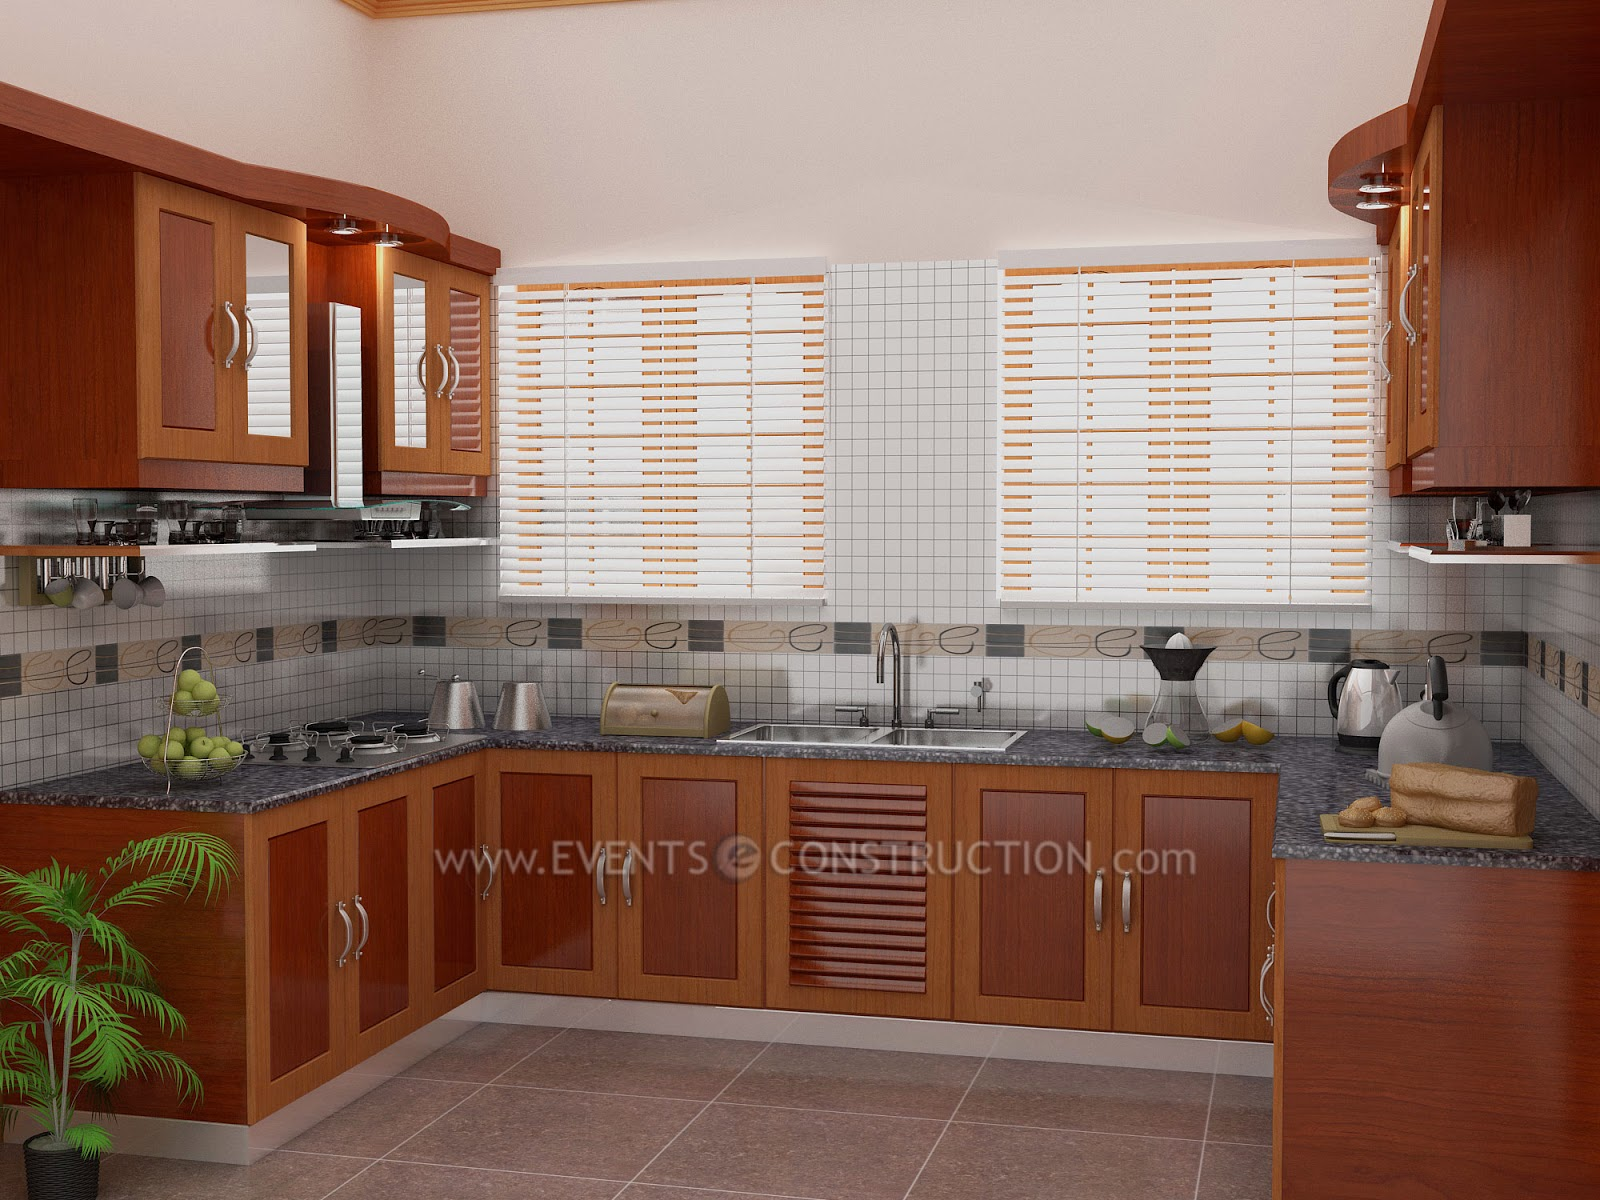 evens construction pvt ltd simple kerala kitchen design ForKitchen Design Kerala